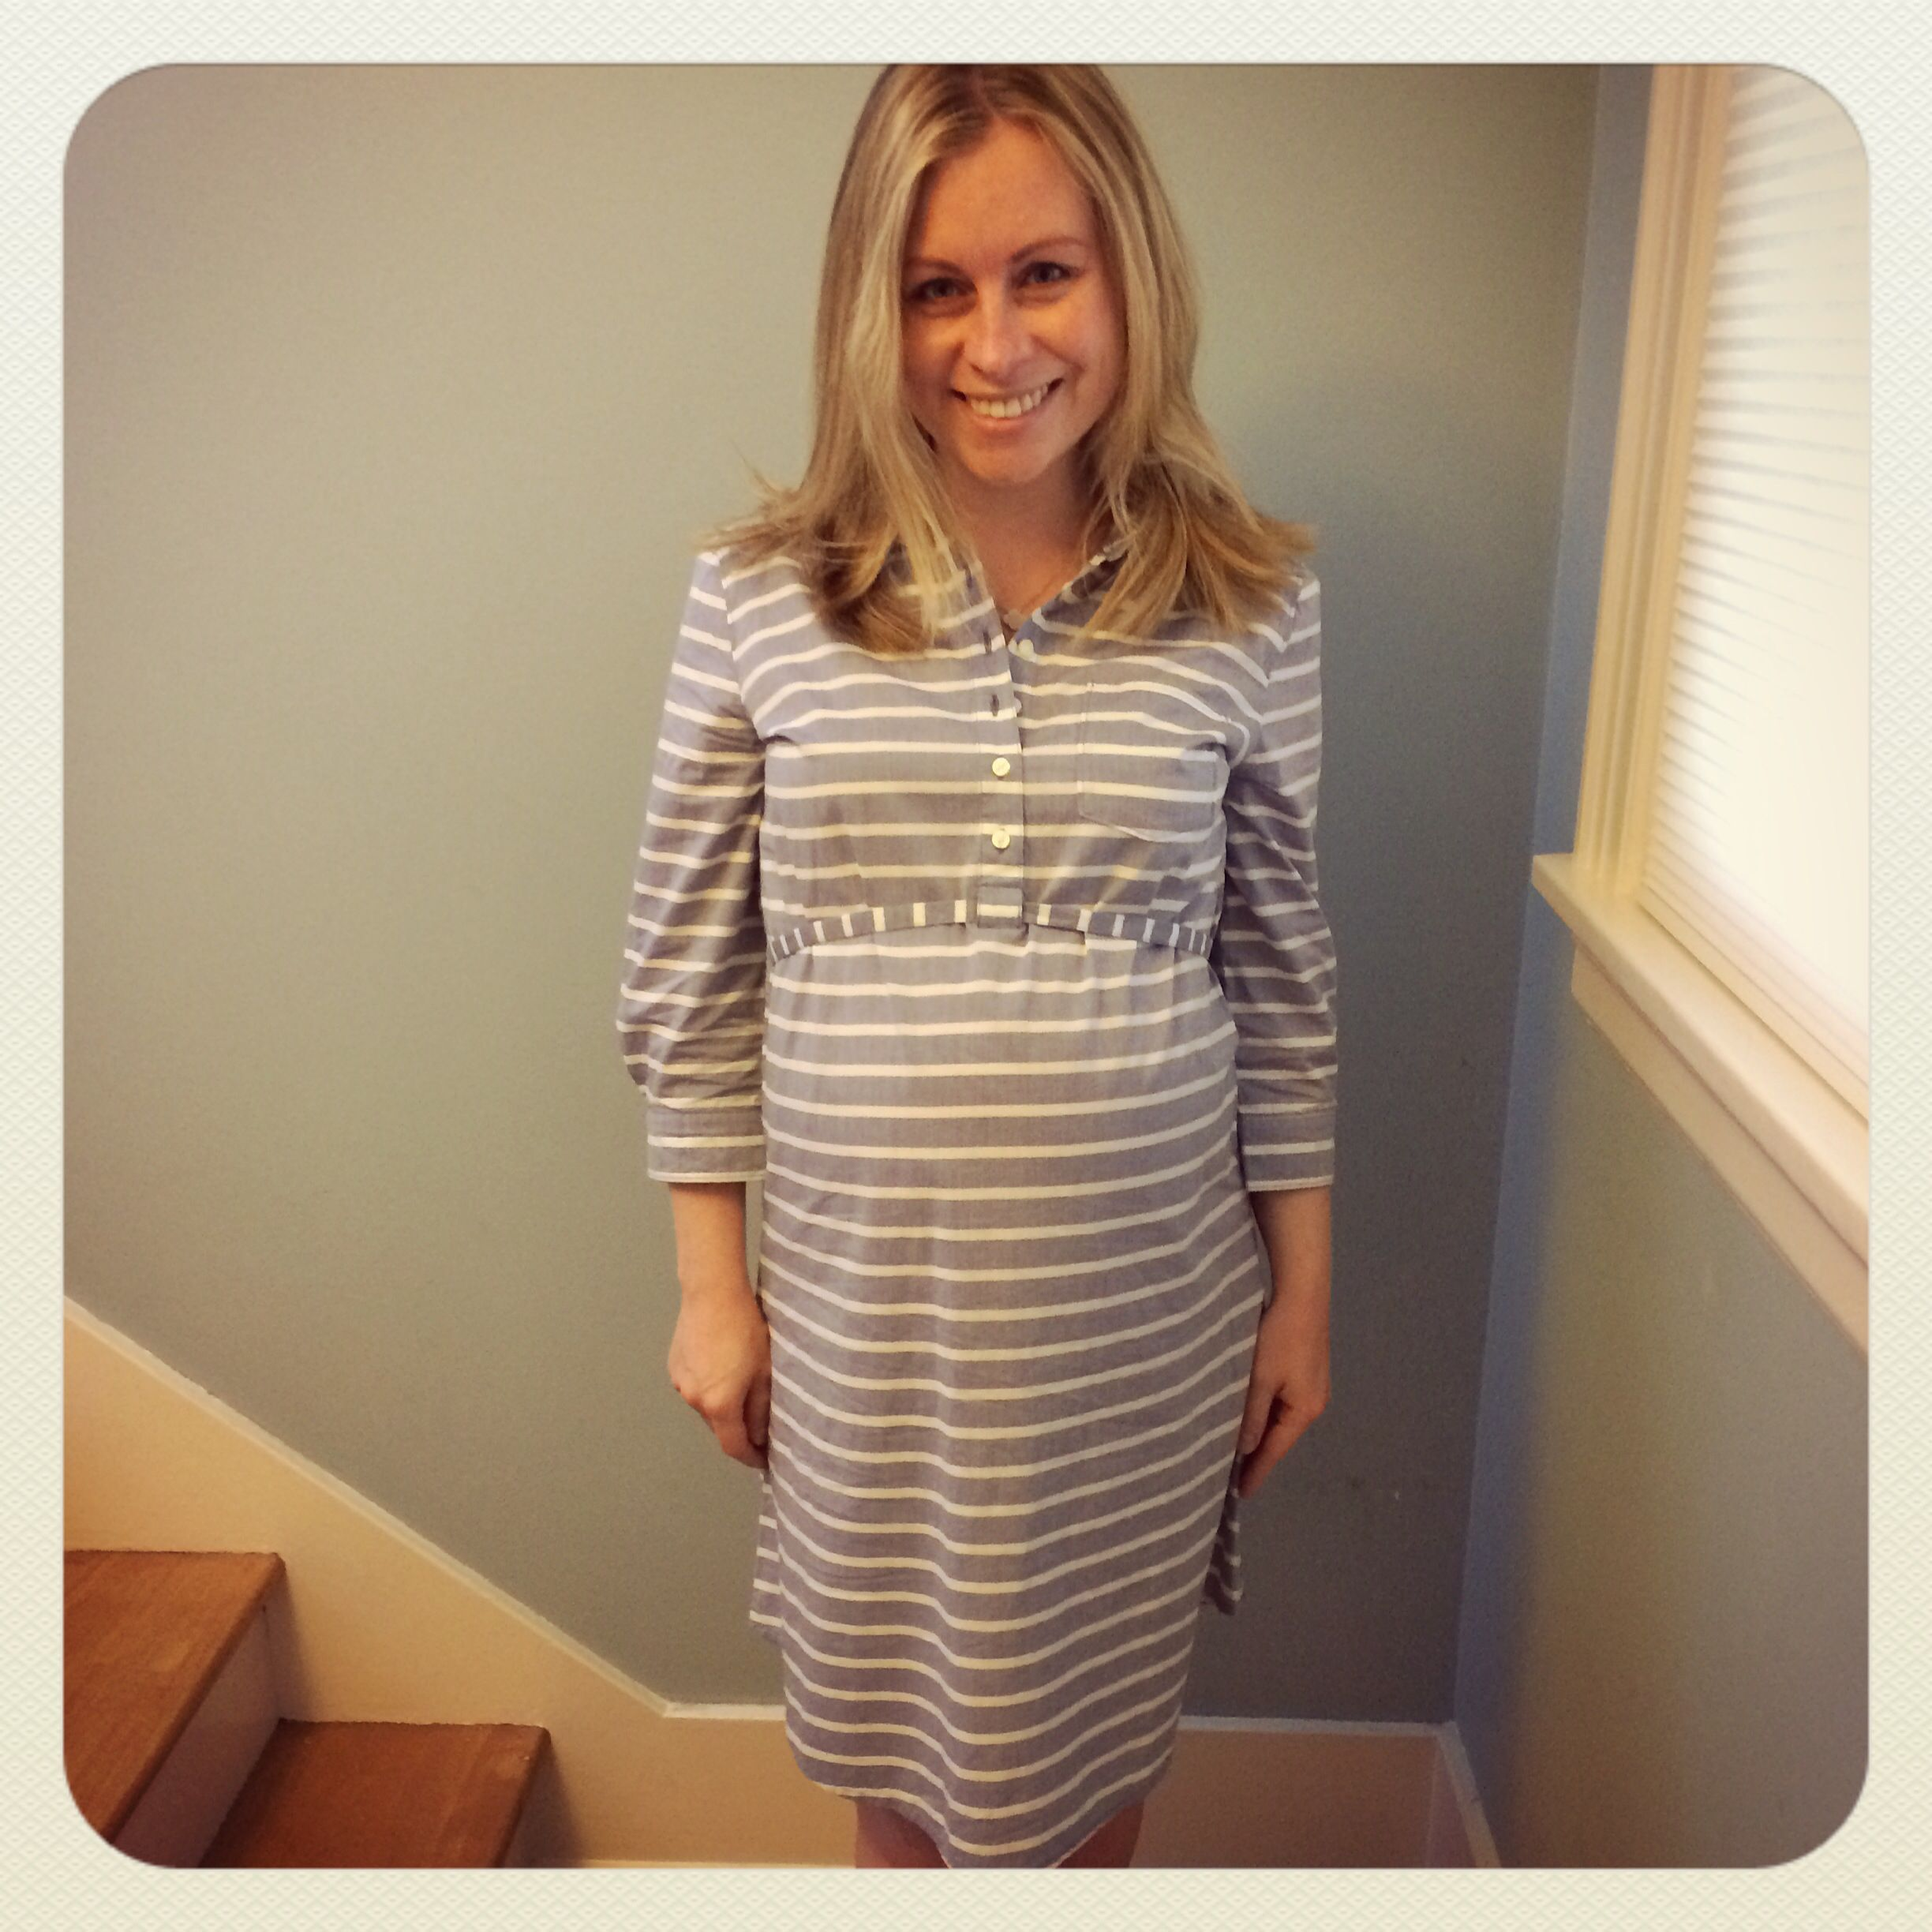 345 weeks in gap maternity dress ninas pregnancy fashion 345 weeks in gap maternity dress ombrellifo Image collections